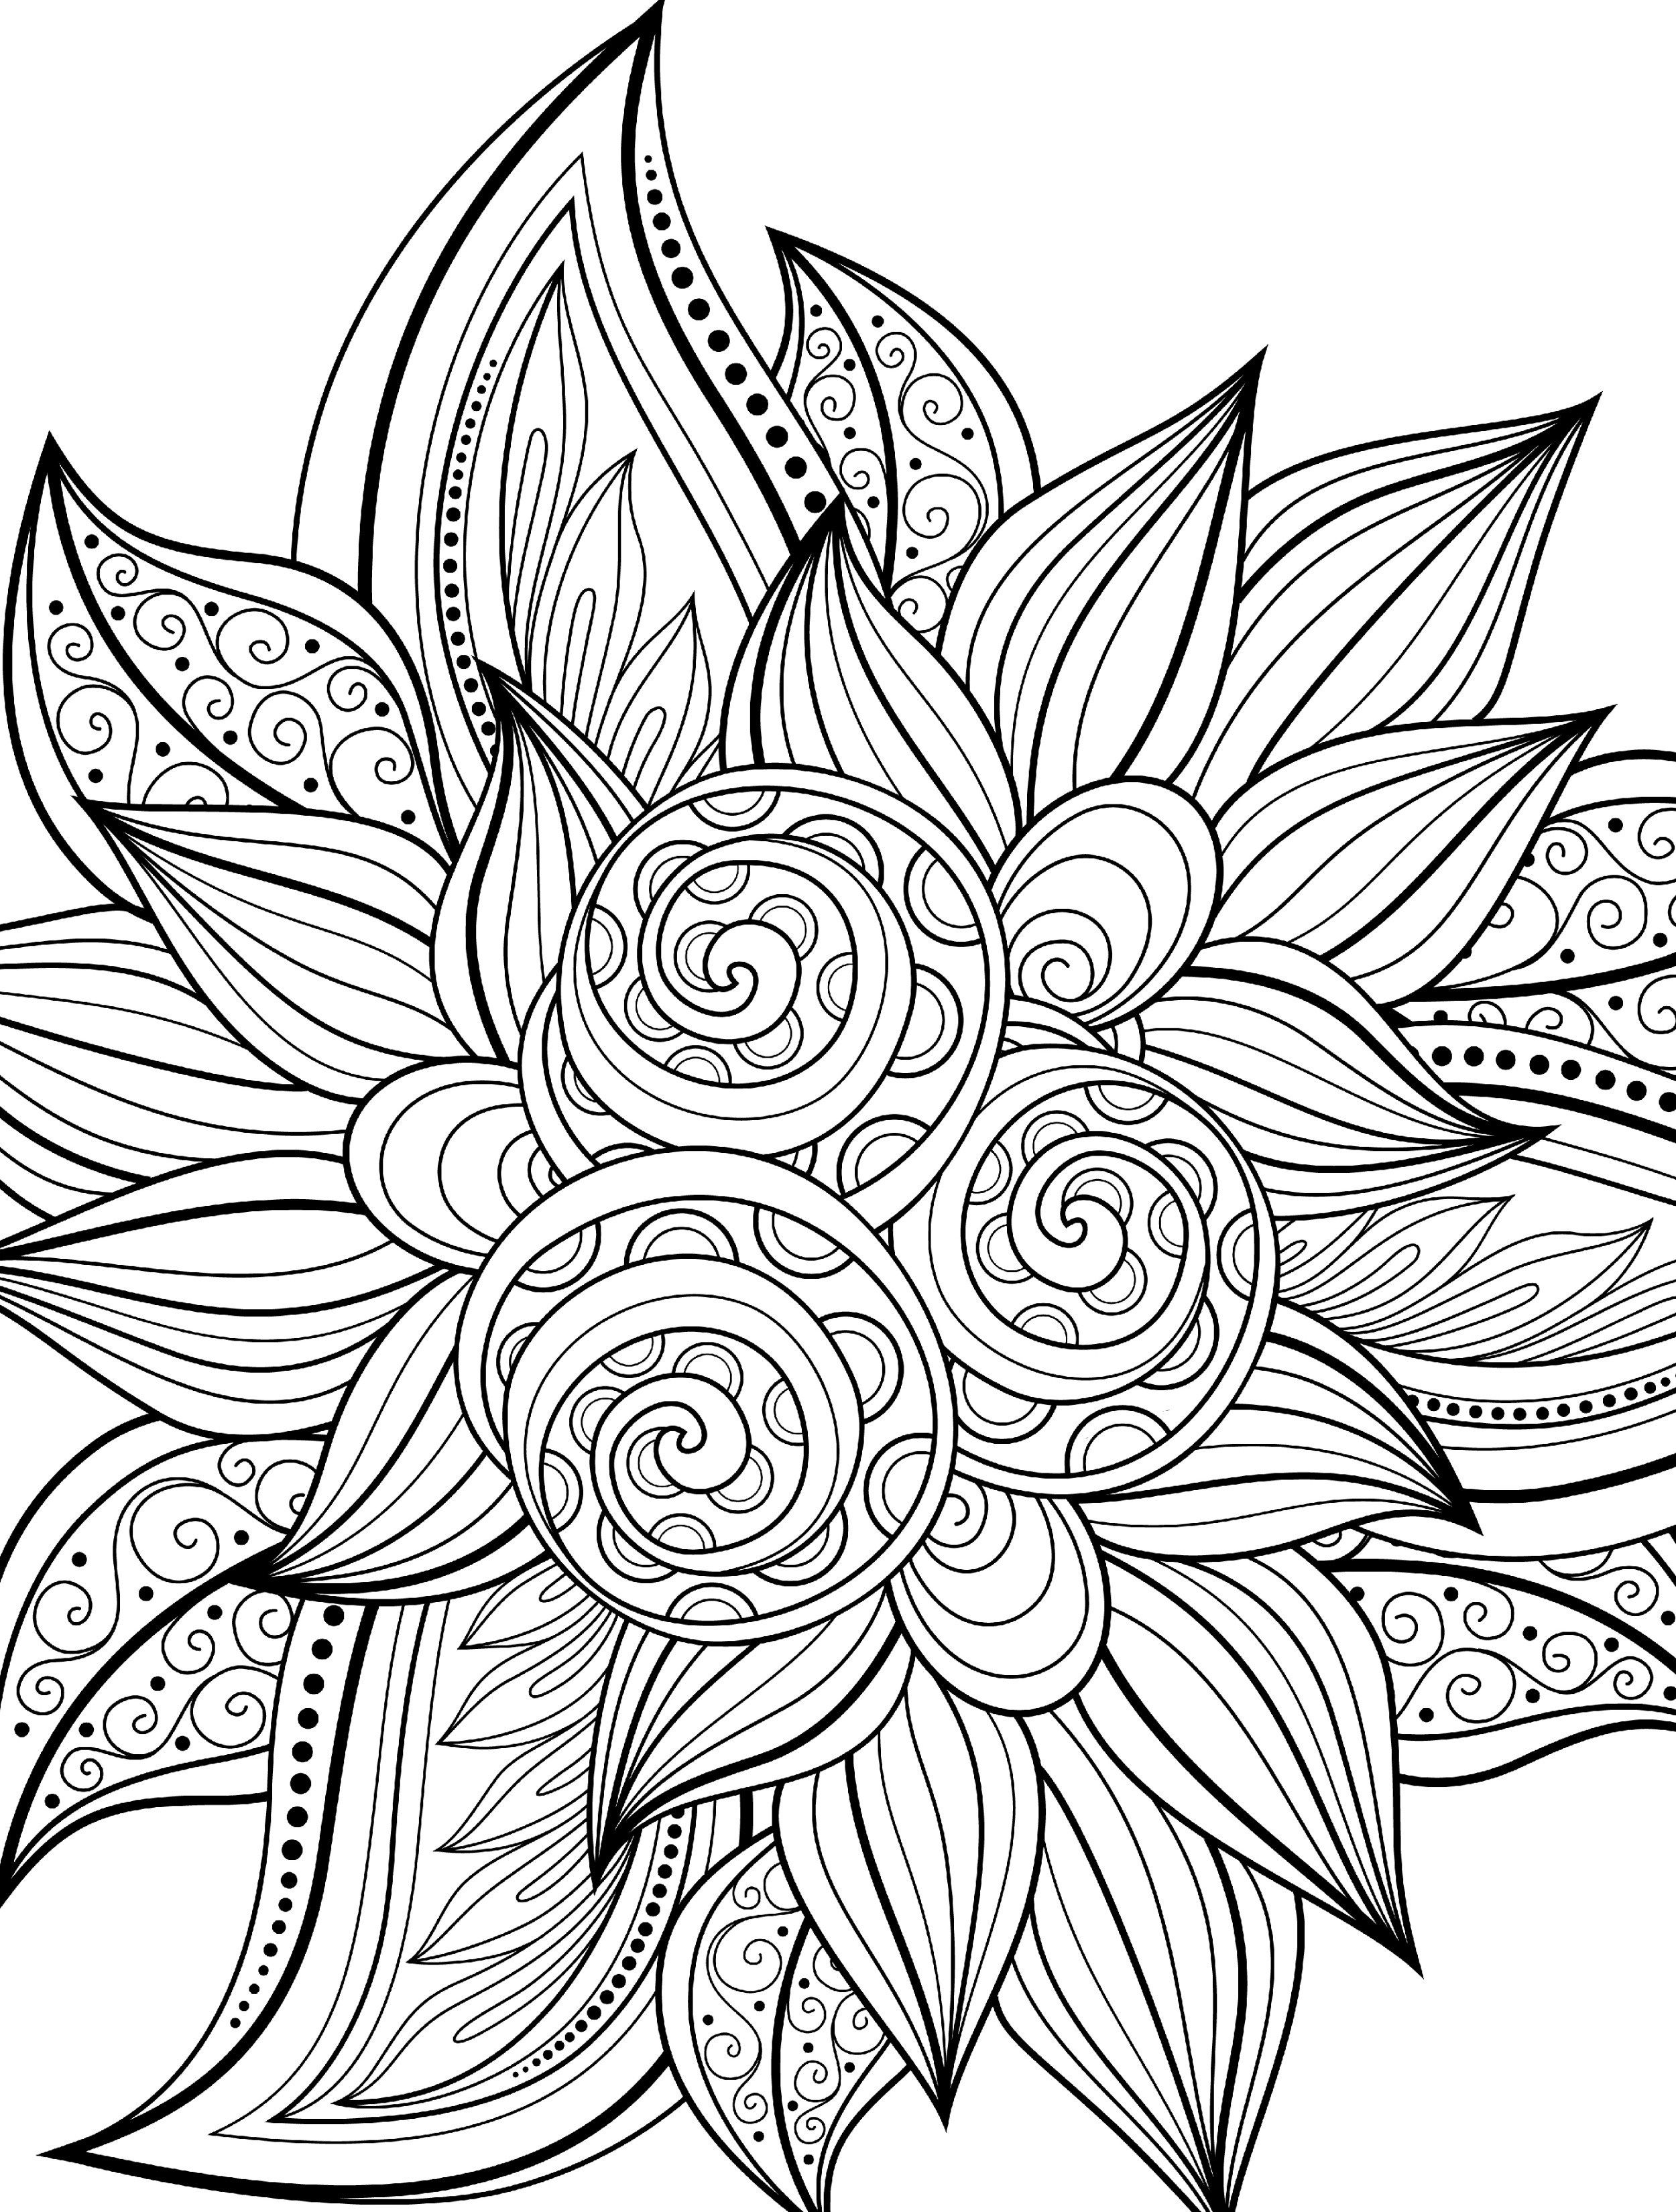 Coloring pages for adults for free - 10 Free Printable Holiday Adult Coloring Pages